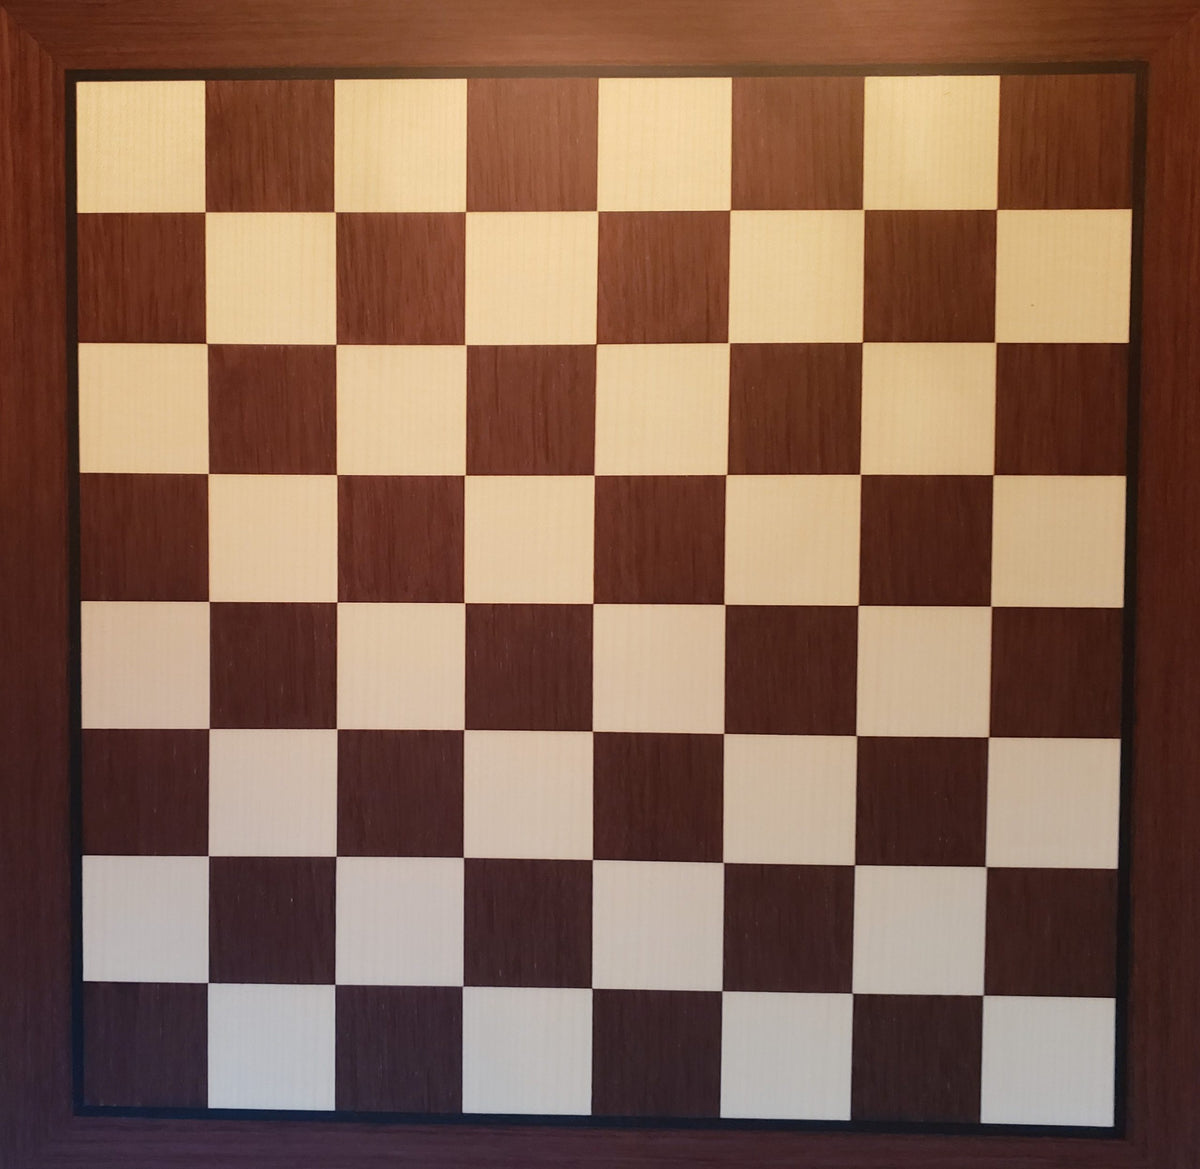 Dark Rosewood and Maple Chess Board